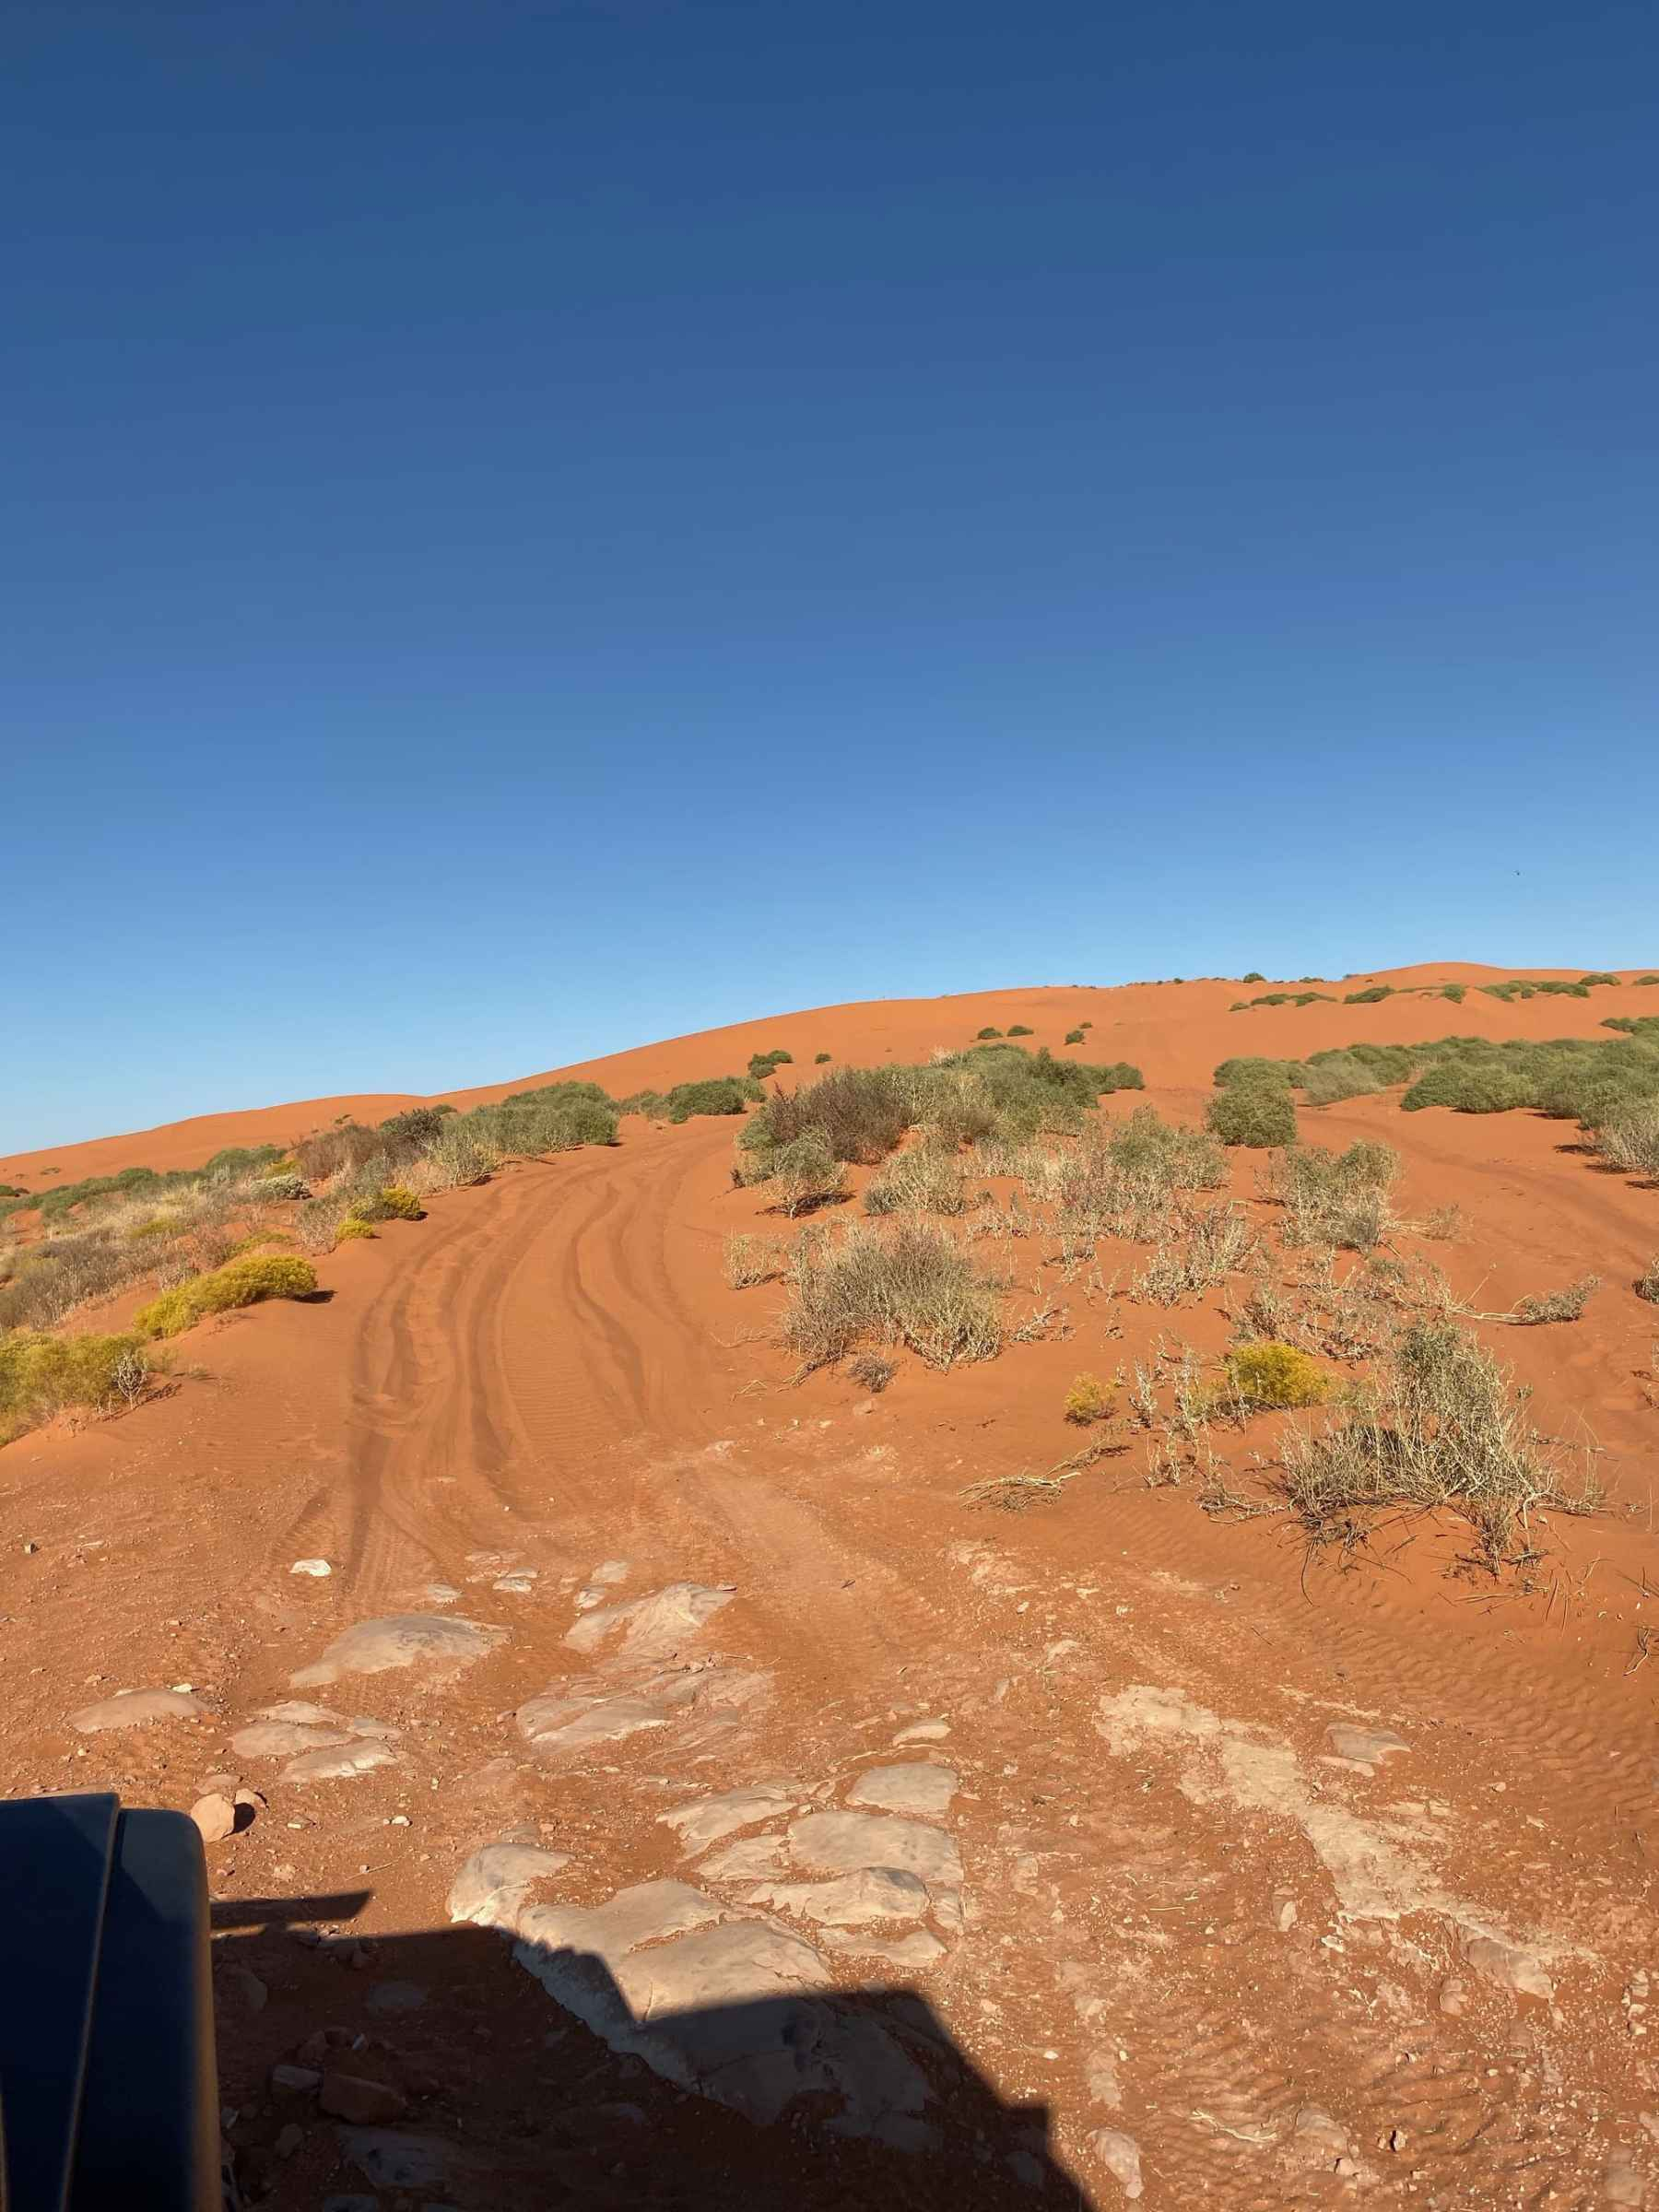 driving onto the sand dunes